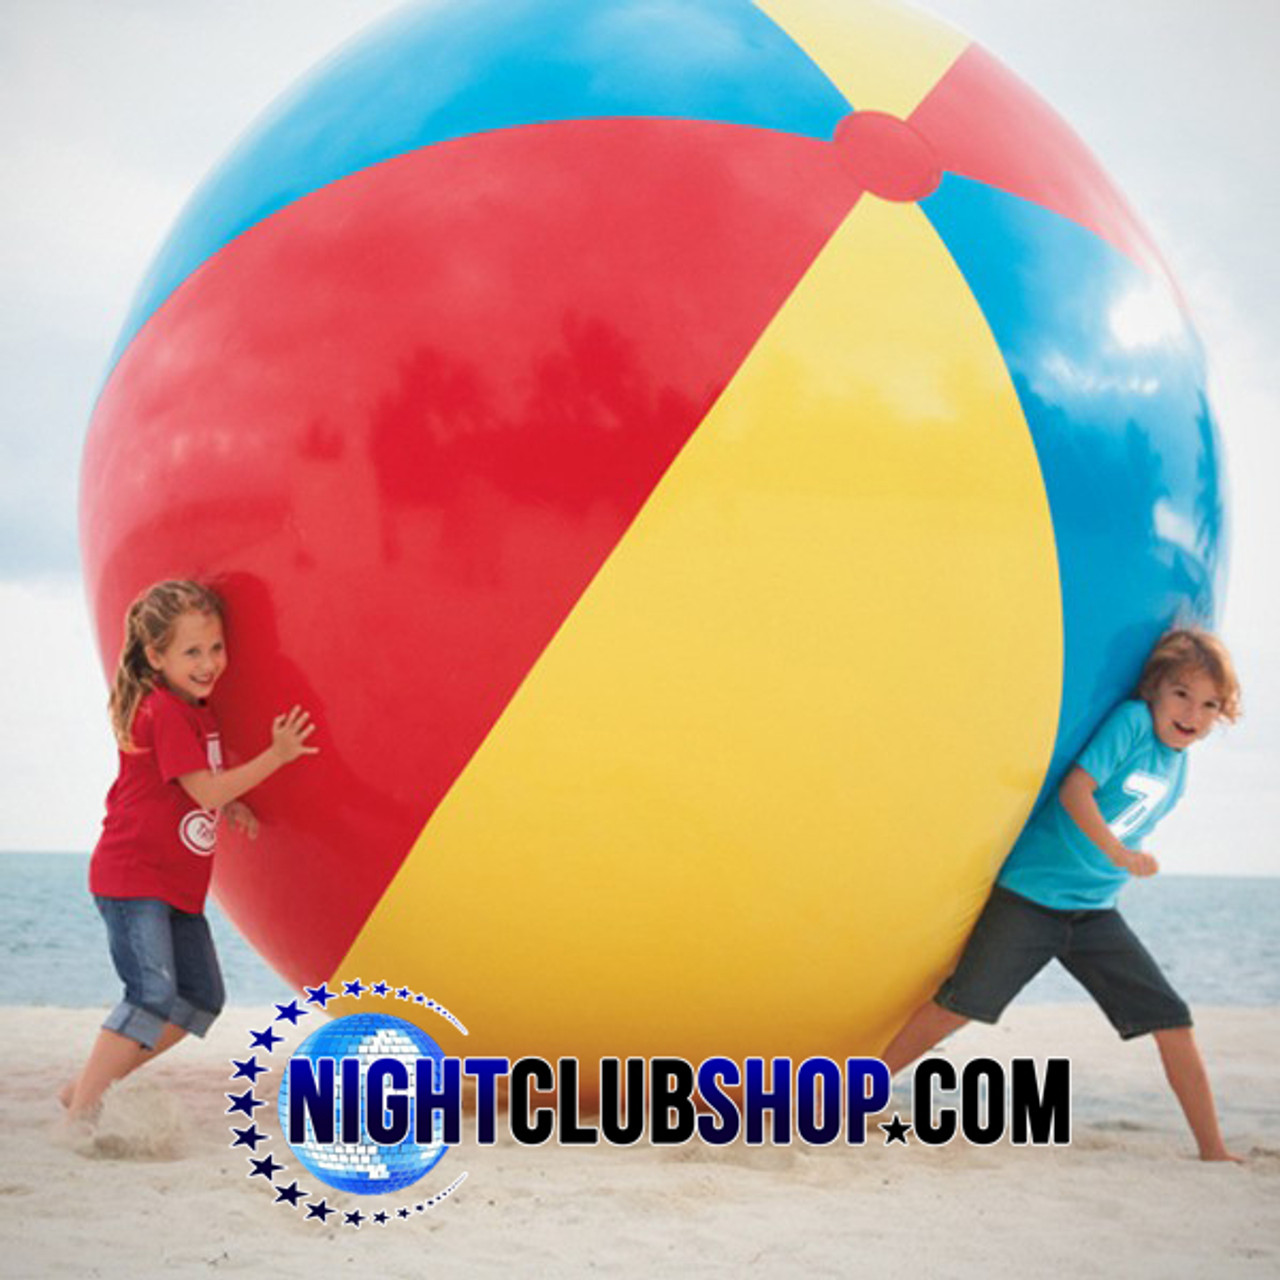 10-foot-giant-jumbo-big-ass-beach-ball-promotions-beach-party-summer-pool-inflatable-float-nightclubshop-supplies-xxl-5